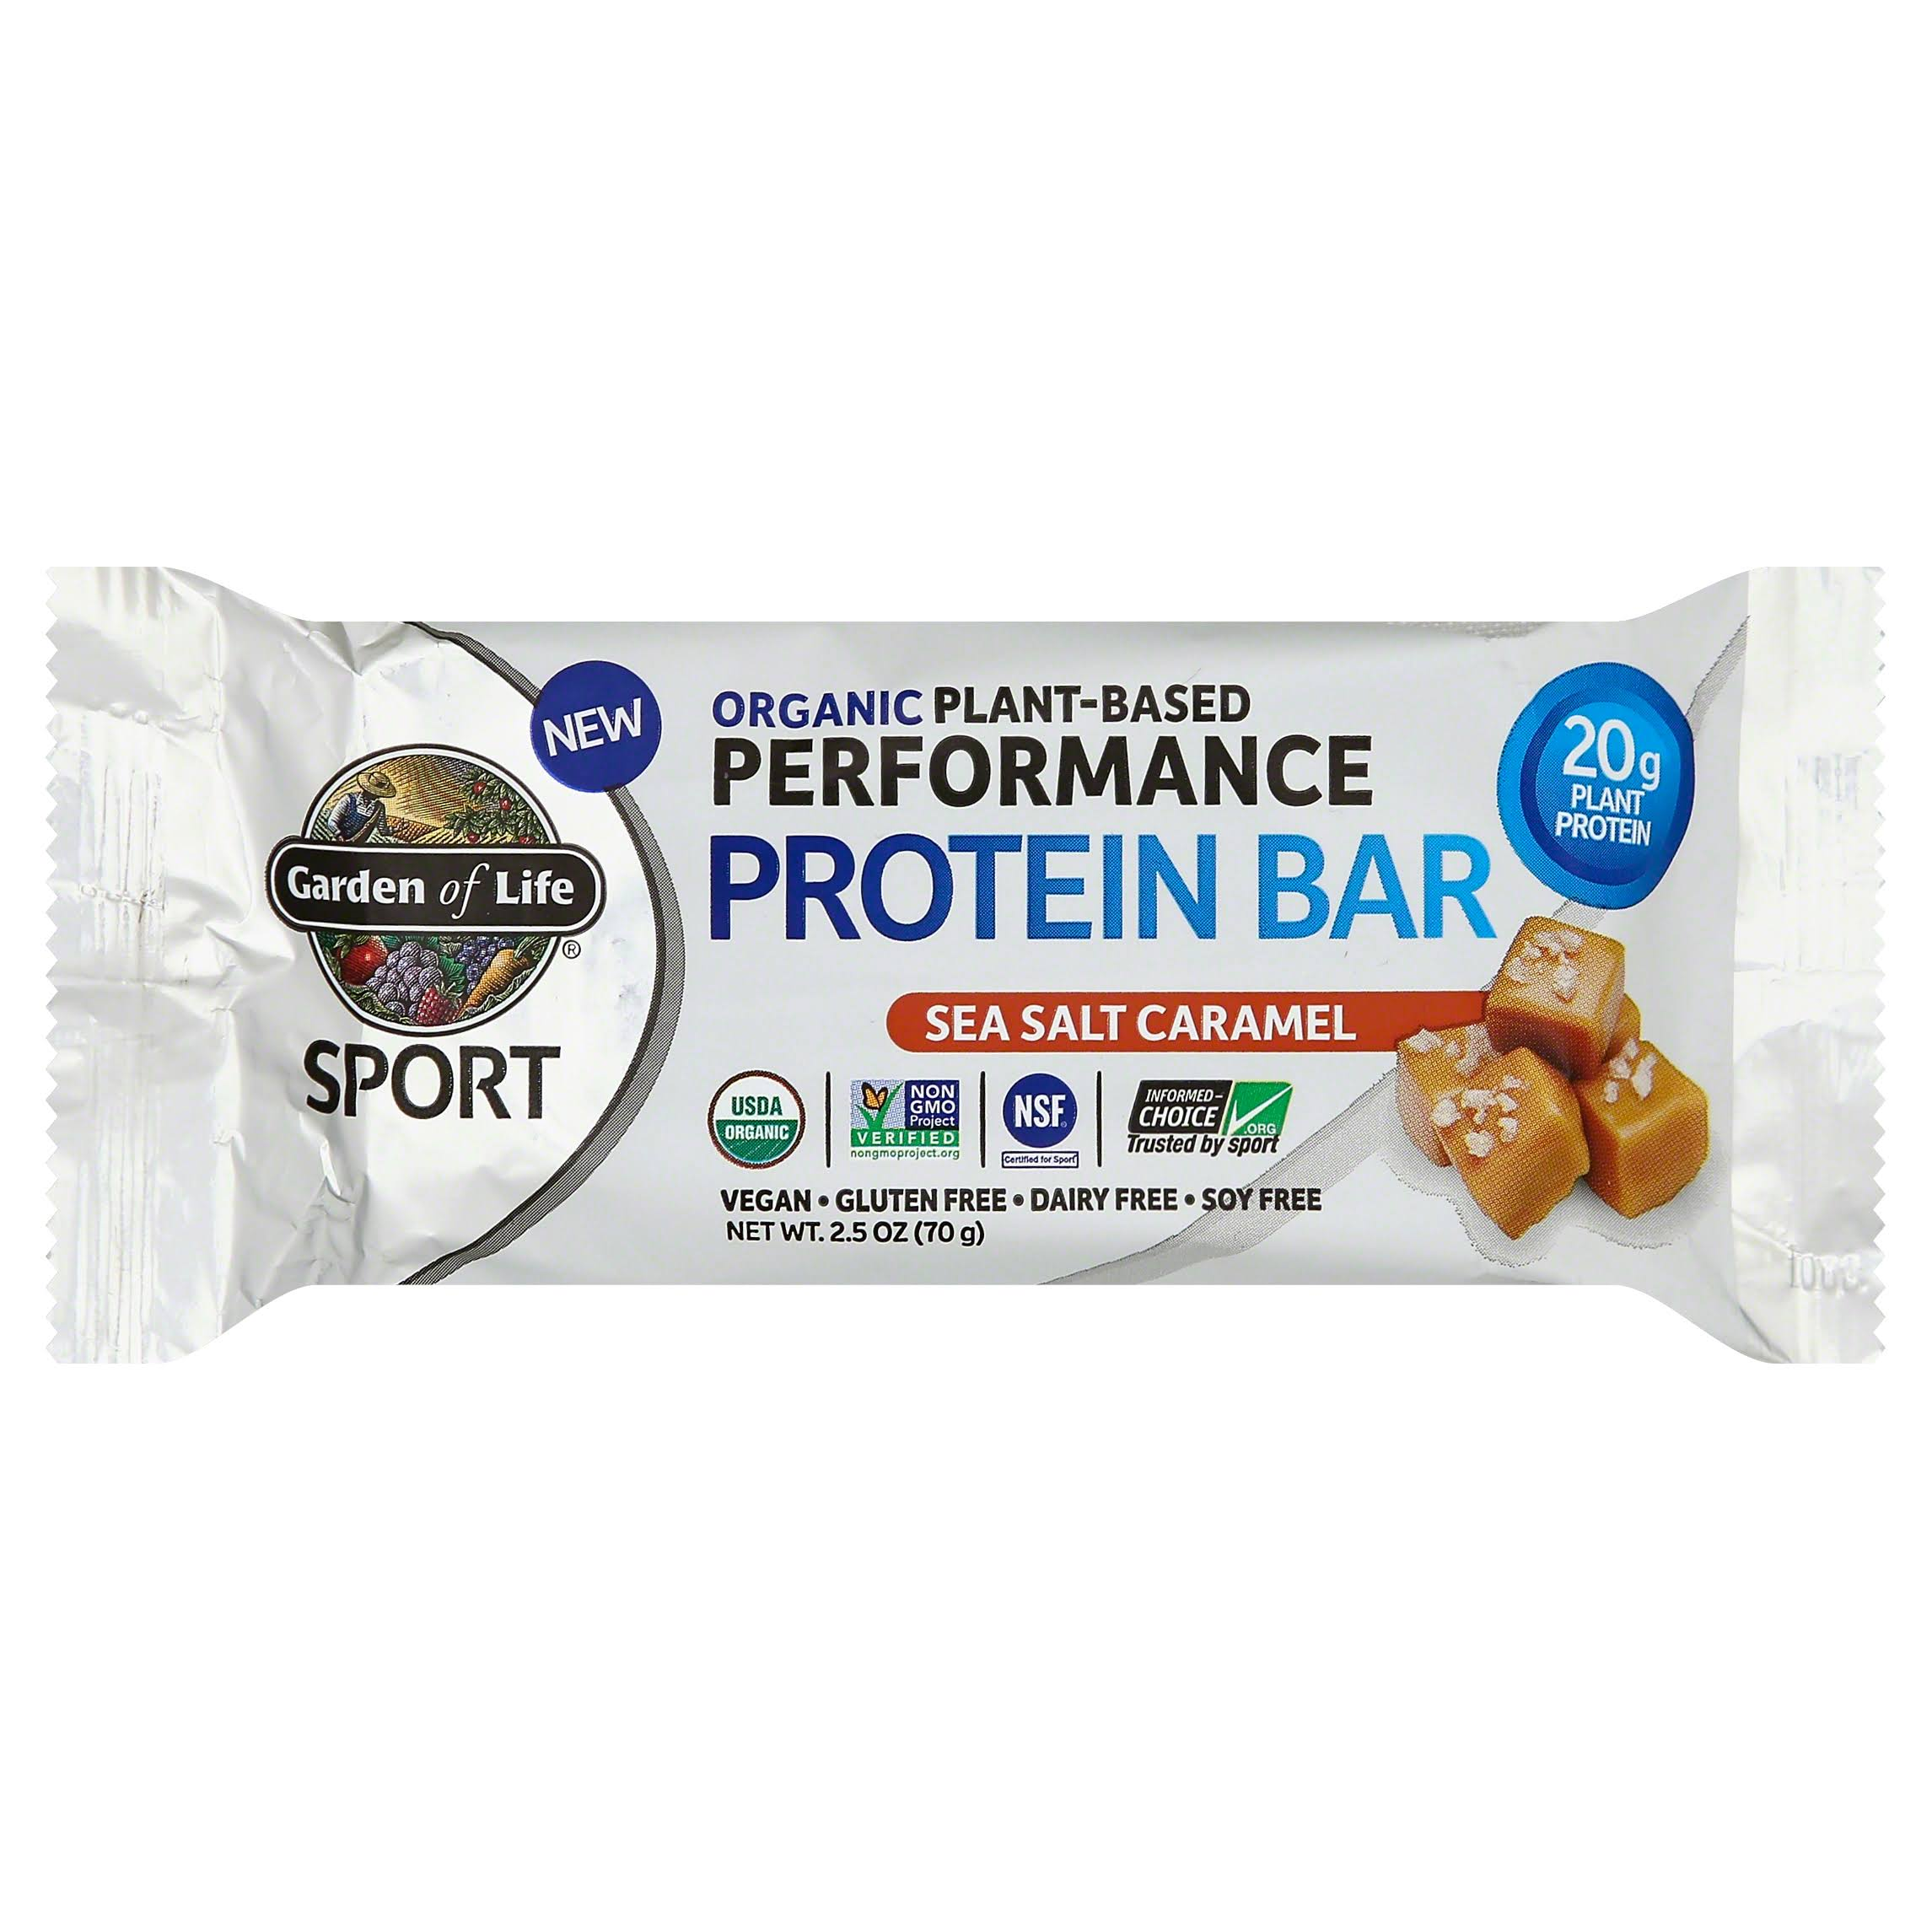 Garden of Life Sport Protein Bar, Performance, Organic Plant-Based, Sea Salt Caramel - 2.5 oz